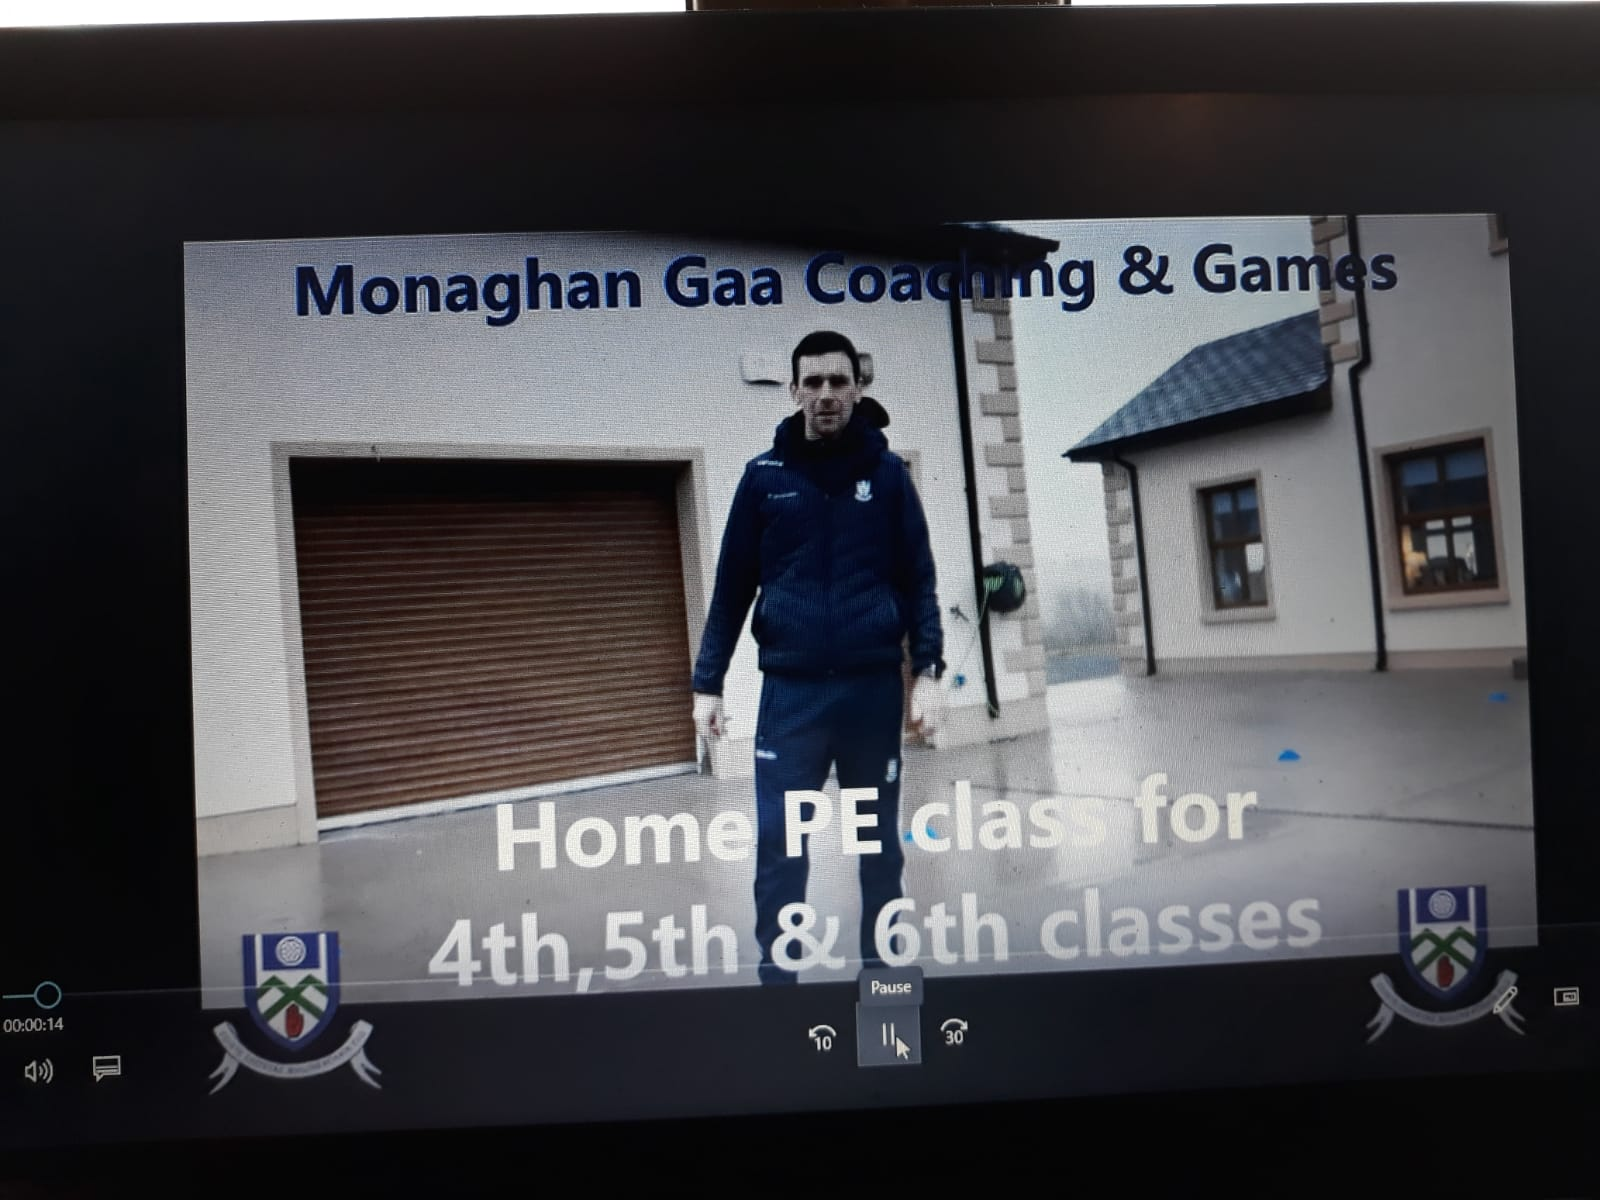 Monaghan Primary School Coaching Video's to Start this Monday……